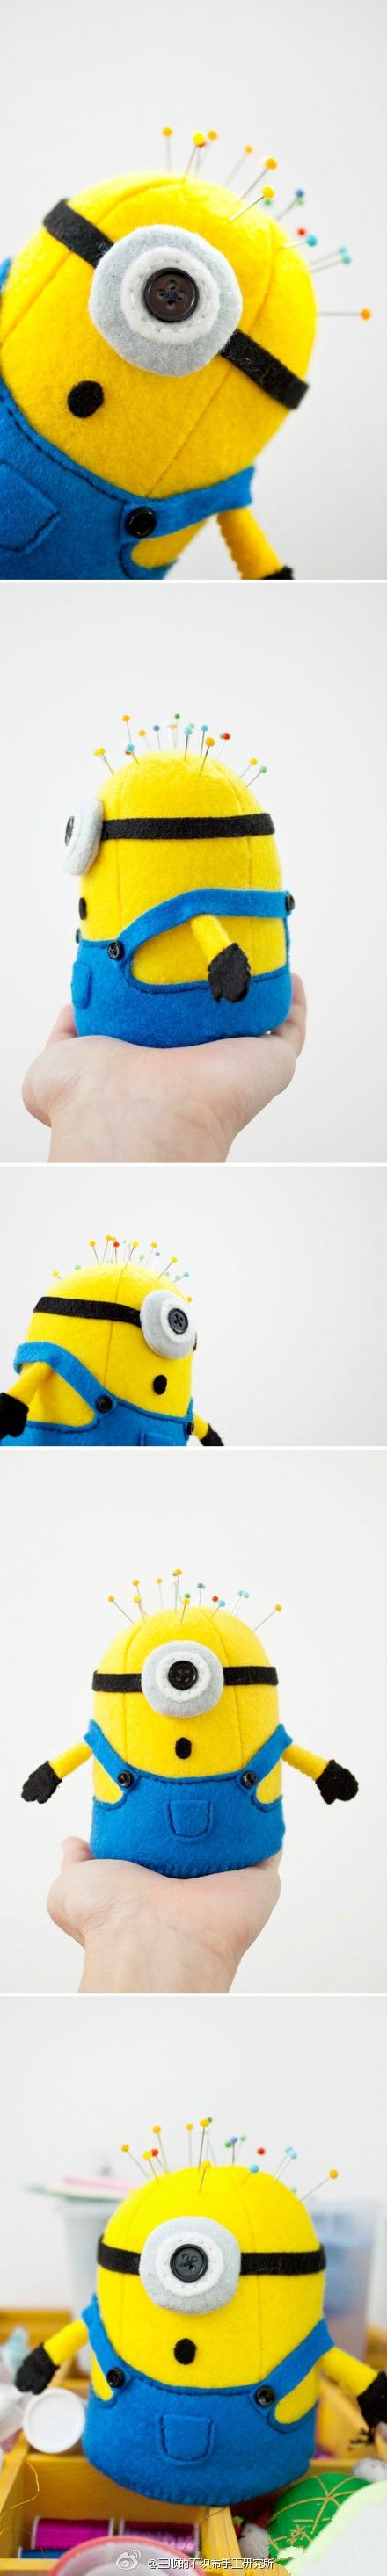 Minion stuffed toy pattern sewing handmade craft pin cushion